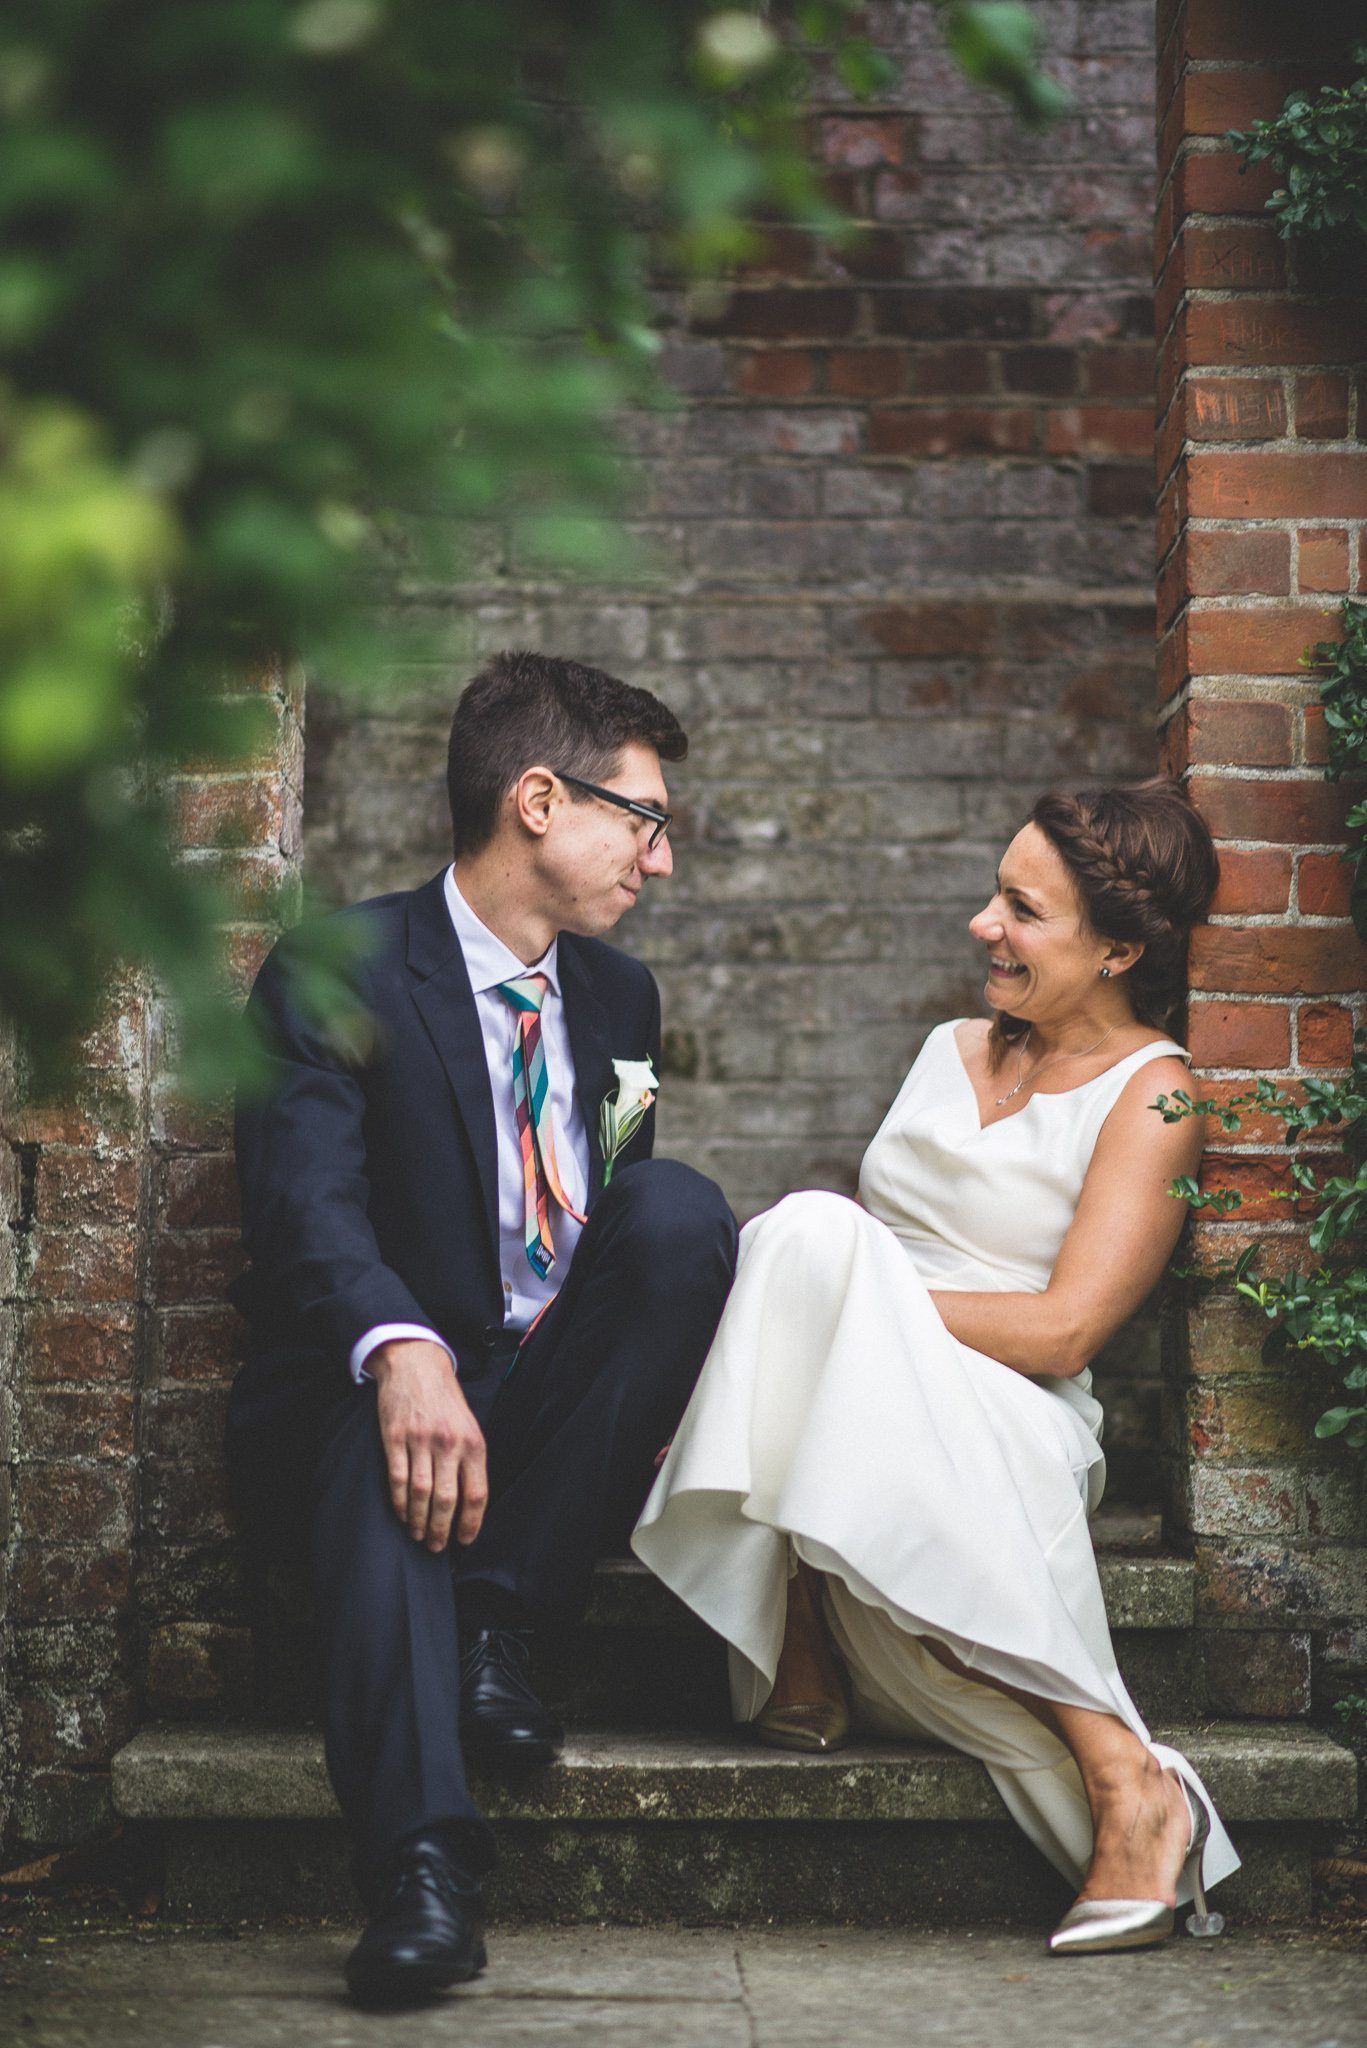 Ilaria laughs as her new husband gazes fondly at her. The couple sit in an archway at the Hampstead Heath pergola